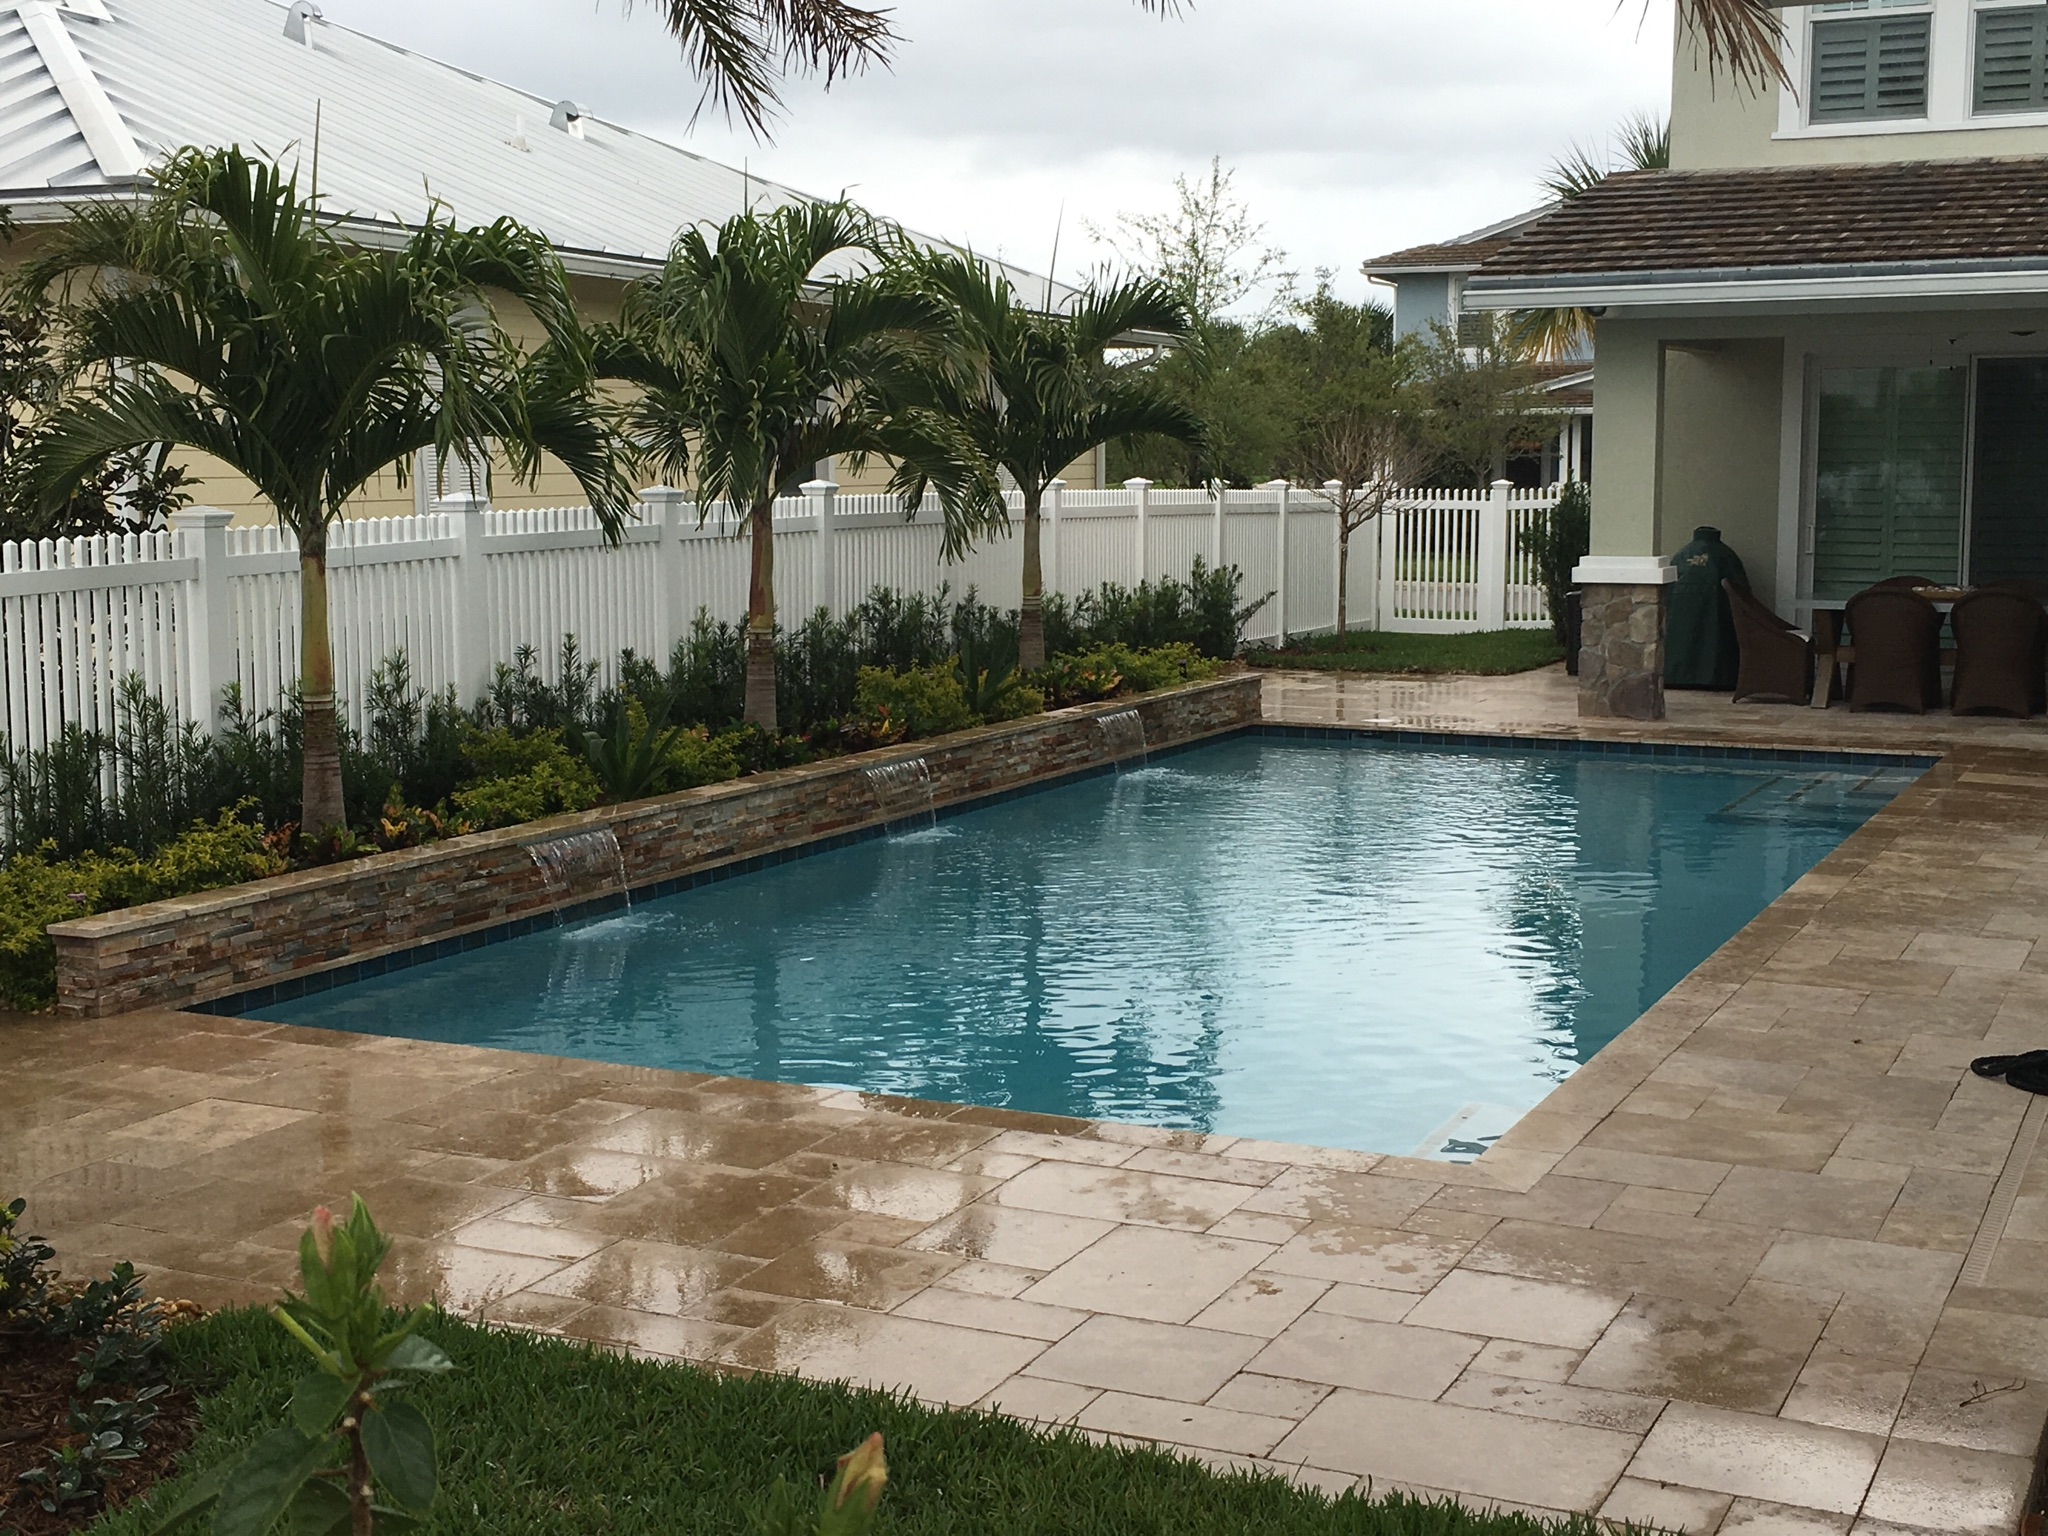 rhr pools of jupiter fl raised wall with water features